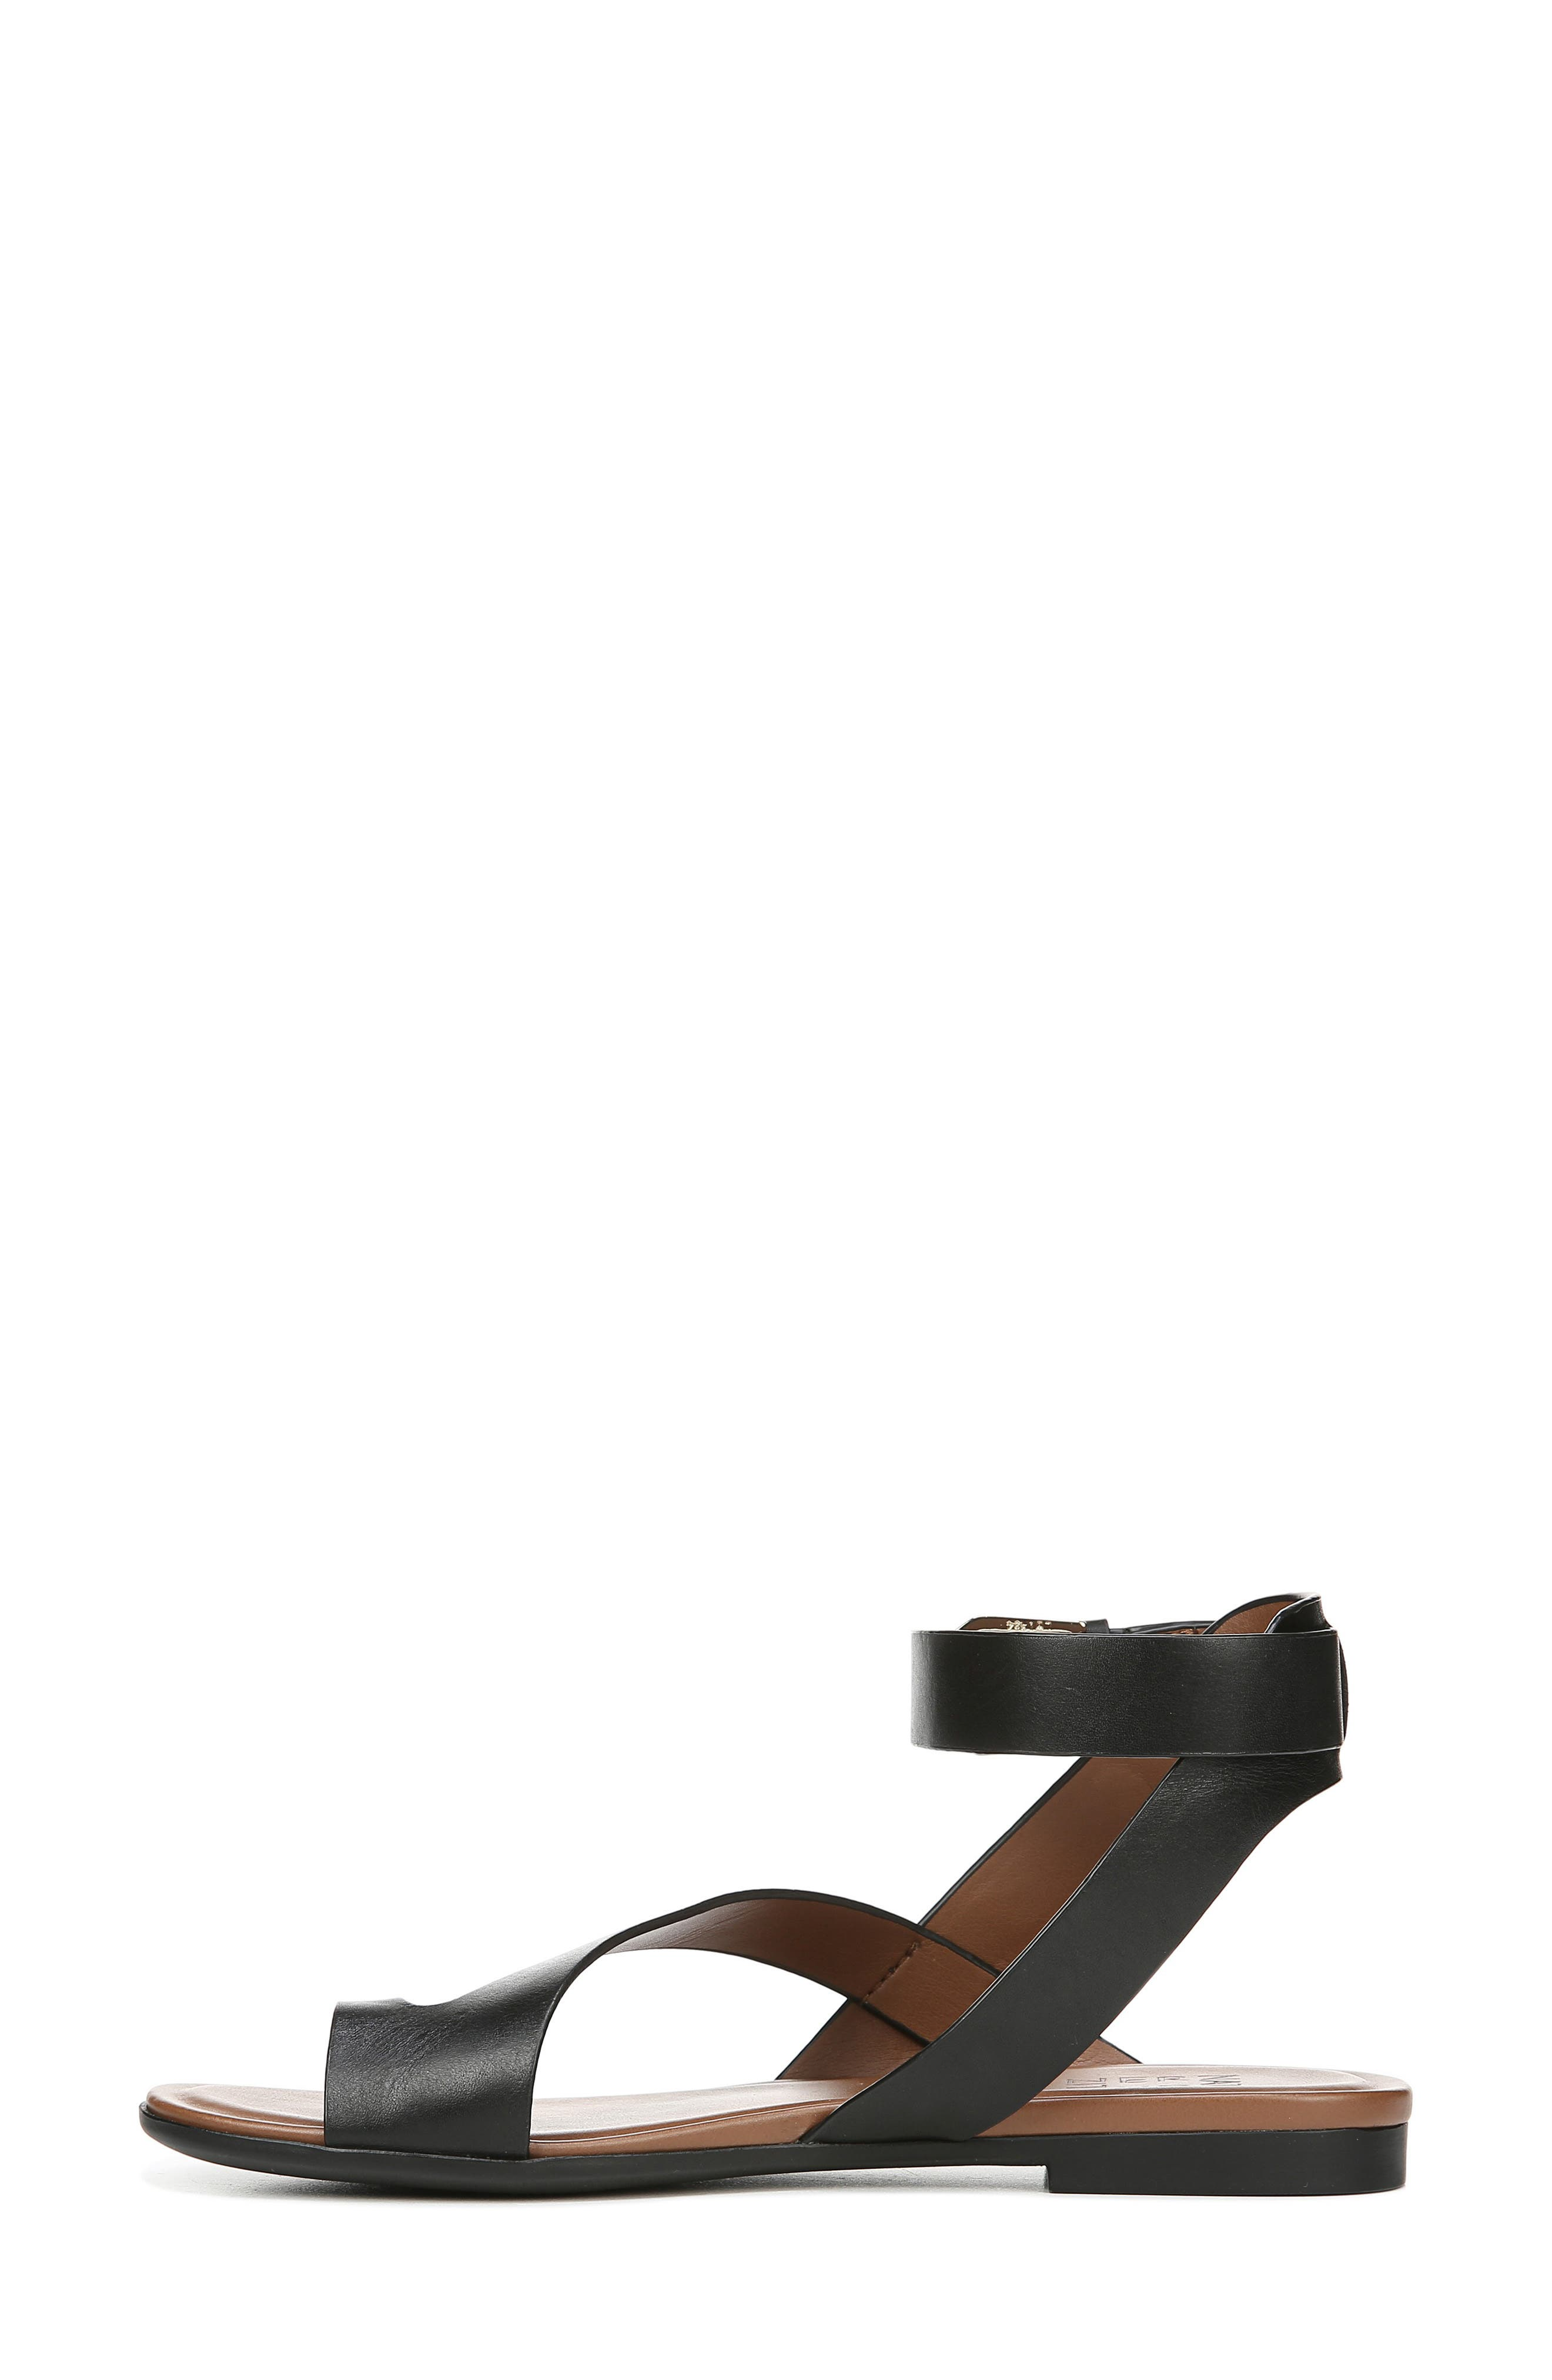 NATURALIZER, Tally Ankle Strap Sandal, Alternate thumbnail 9, color, BLACK LEATHER